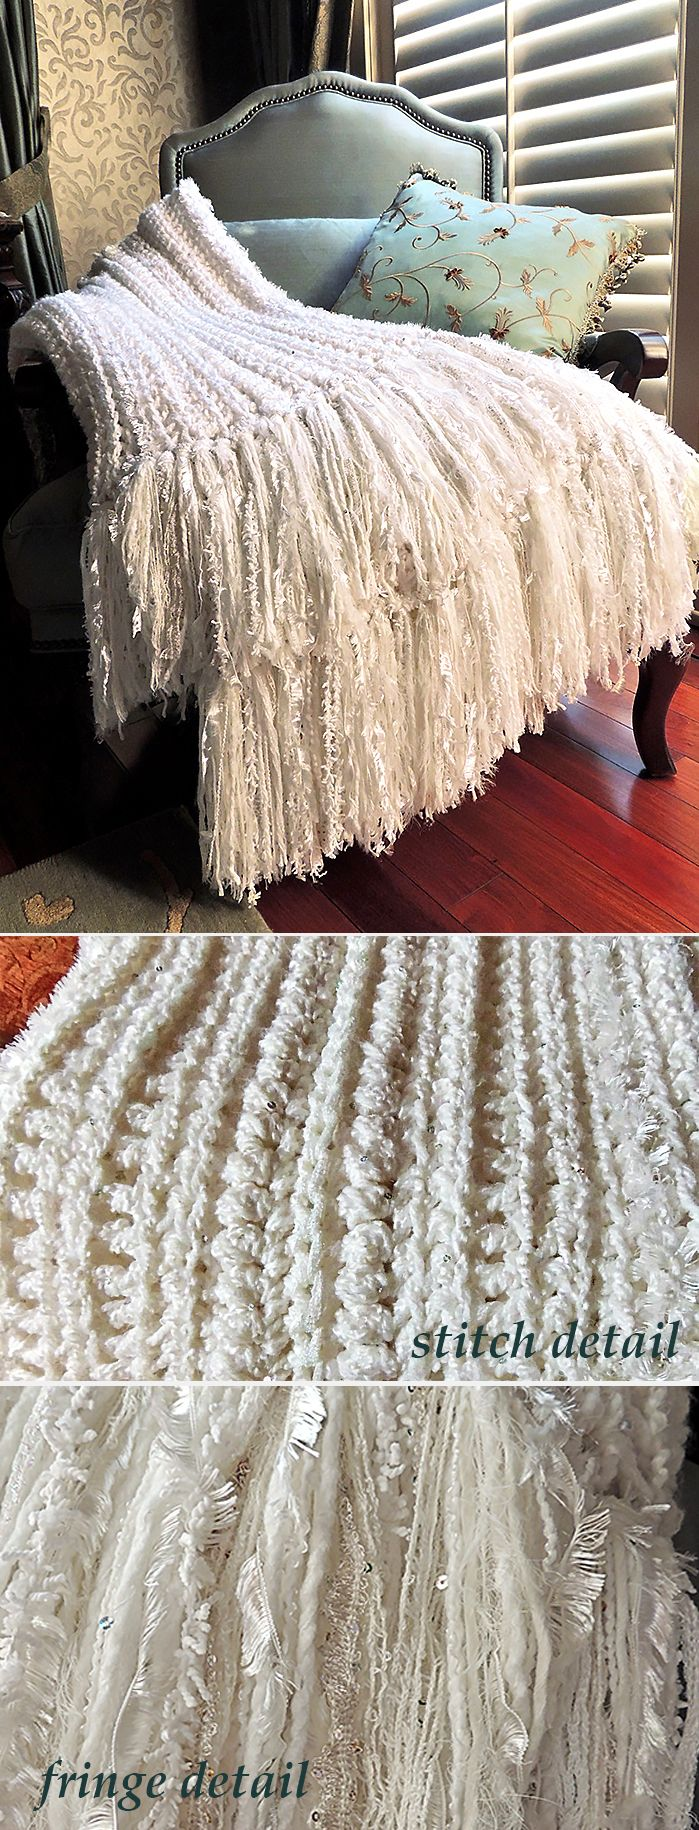 """Latest addition from my Crochet Obsession - White doesn't have to be boring! Afghan crocheted in single, 1/2 double, double and double-single stitch. Body is 2 strands - 1 Deborah Norville Sequin chunky and 1 Lionbrand Homespun using a """"Q"""" hook. Finished off with a fluffy and unique 11"""" fringe made with Eyelash, scarf yarn and various other chunky yarns. So soft and so pretty!"""